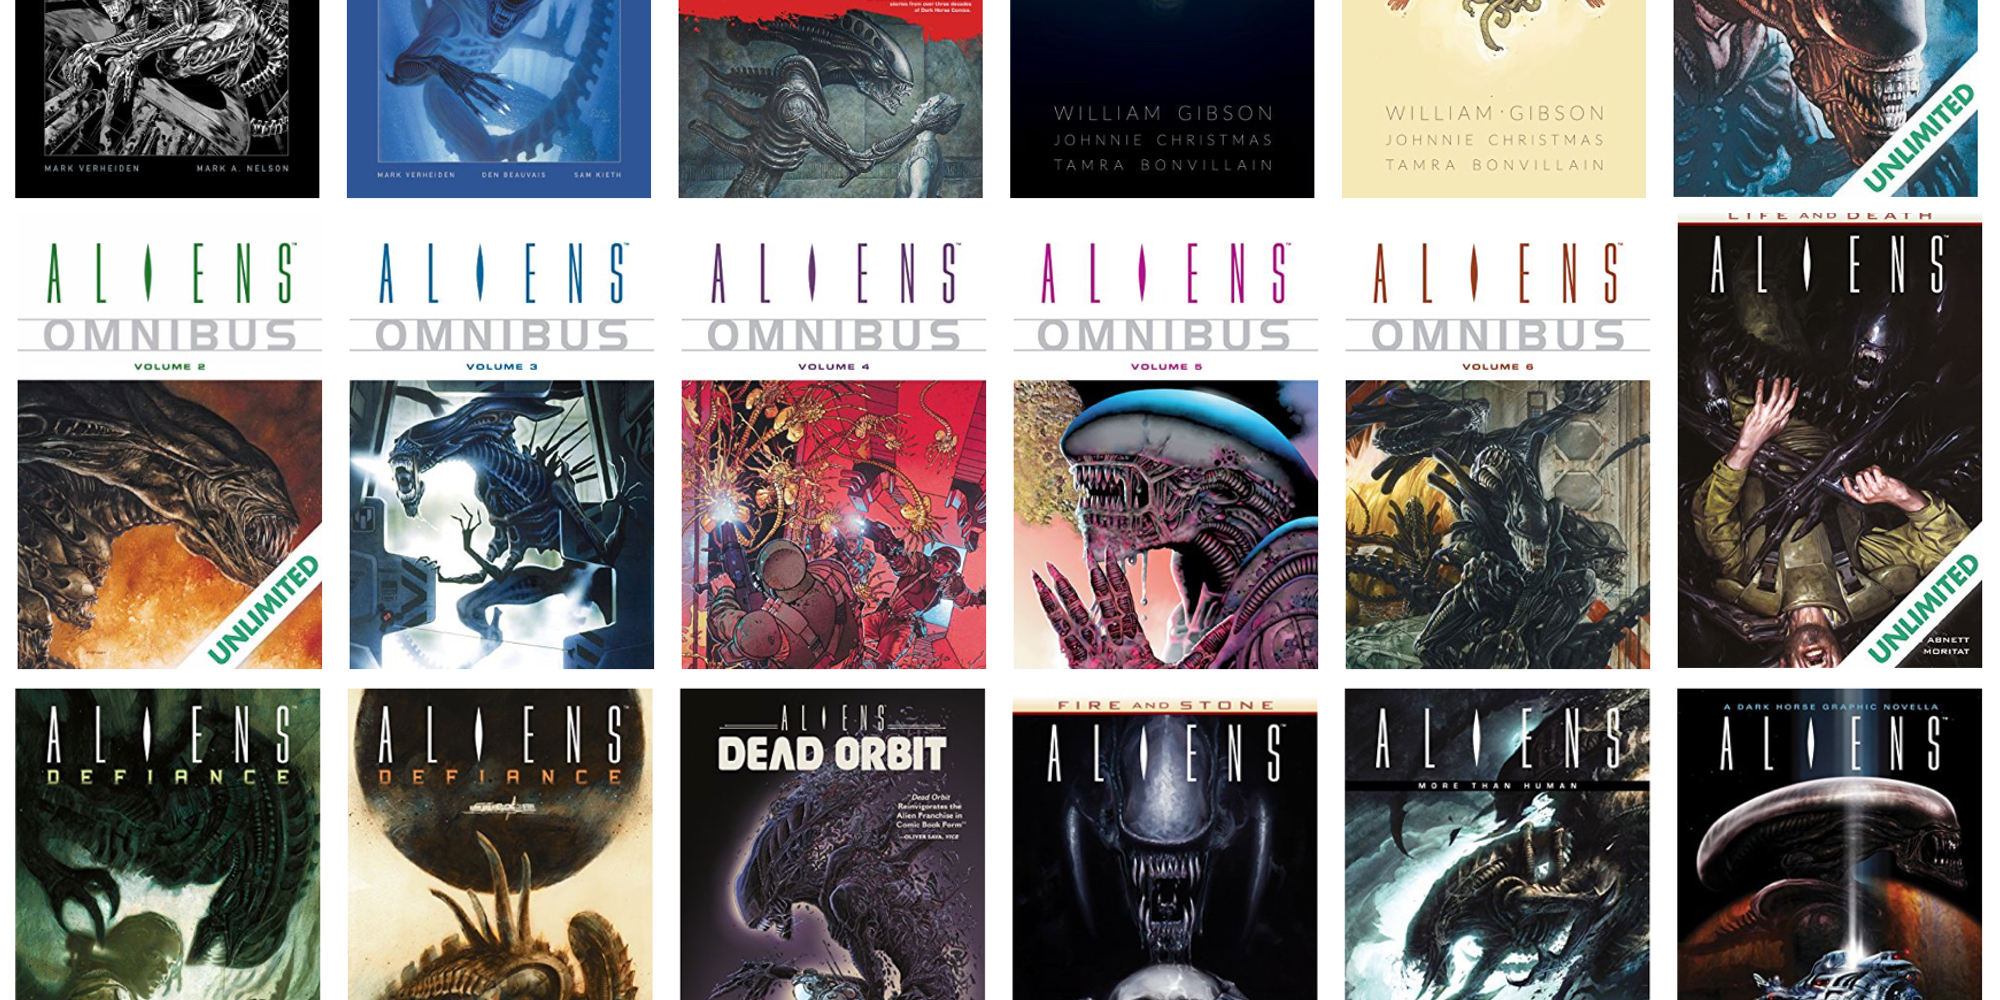 Save up to 65% on Dark Horse Aliens digital comics and collections from $1 at ComiXology